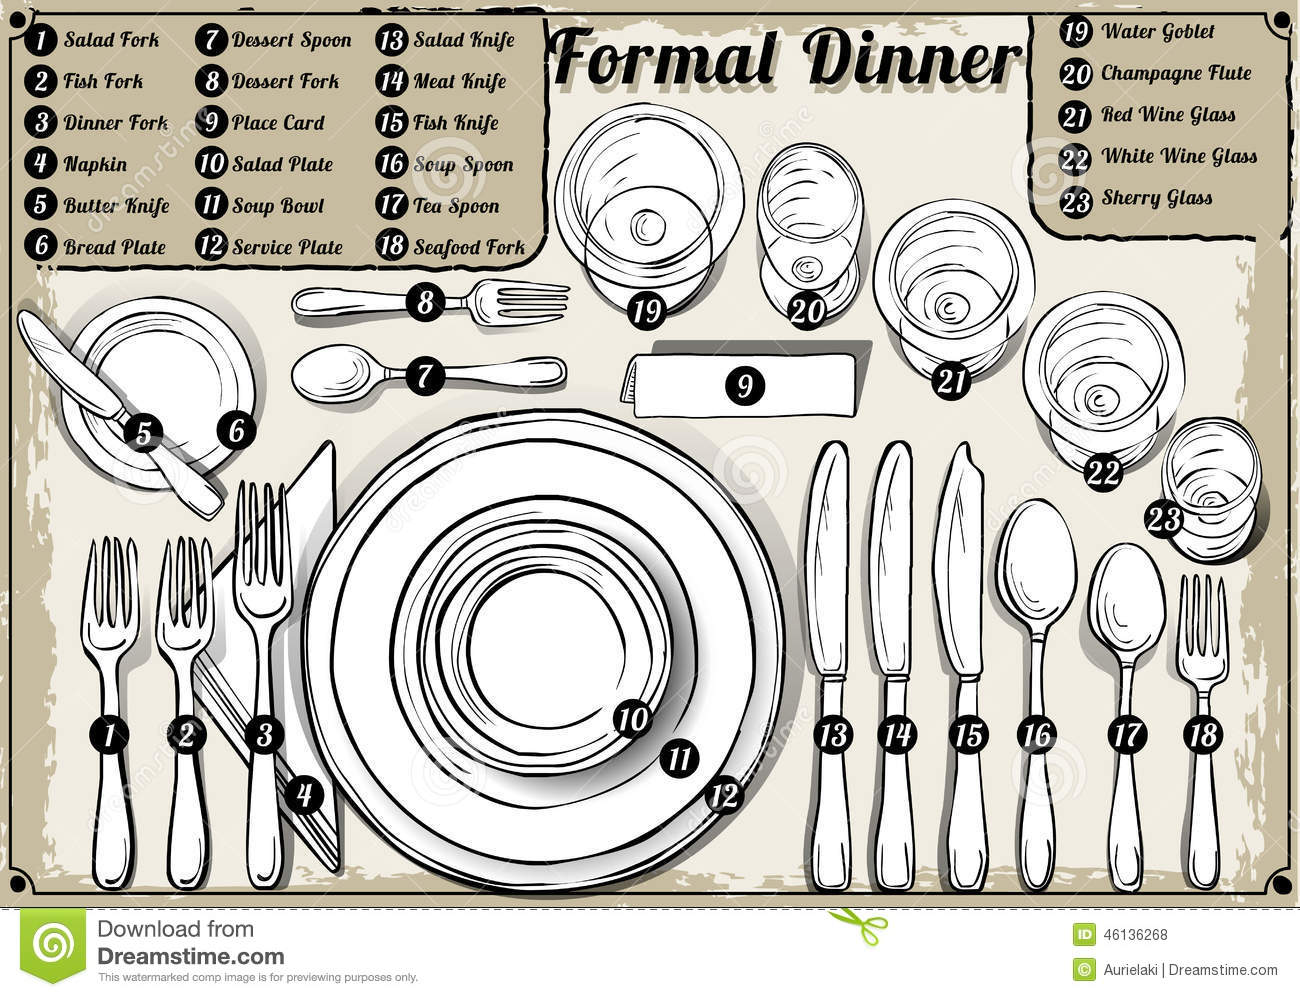 Vintage Hand Drawn Place Setting Formal Dinner Stock  : vintage hand drawn place setting formal dinner detailed illustration illustration saved eps color space 46136268 from www.dreamstime.com size 1300 x 997 jpeg 231kB